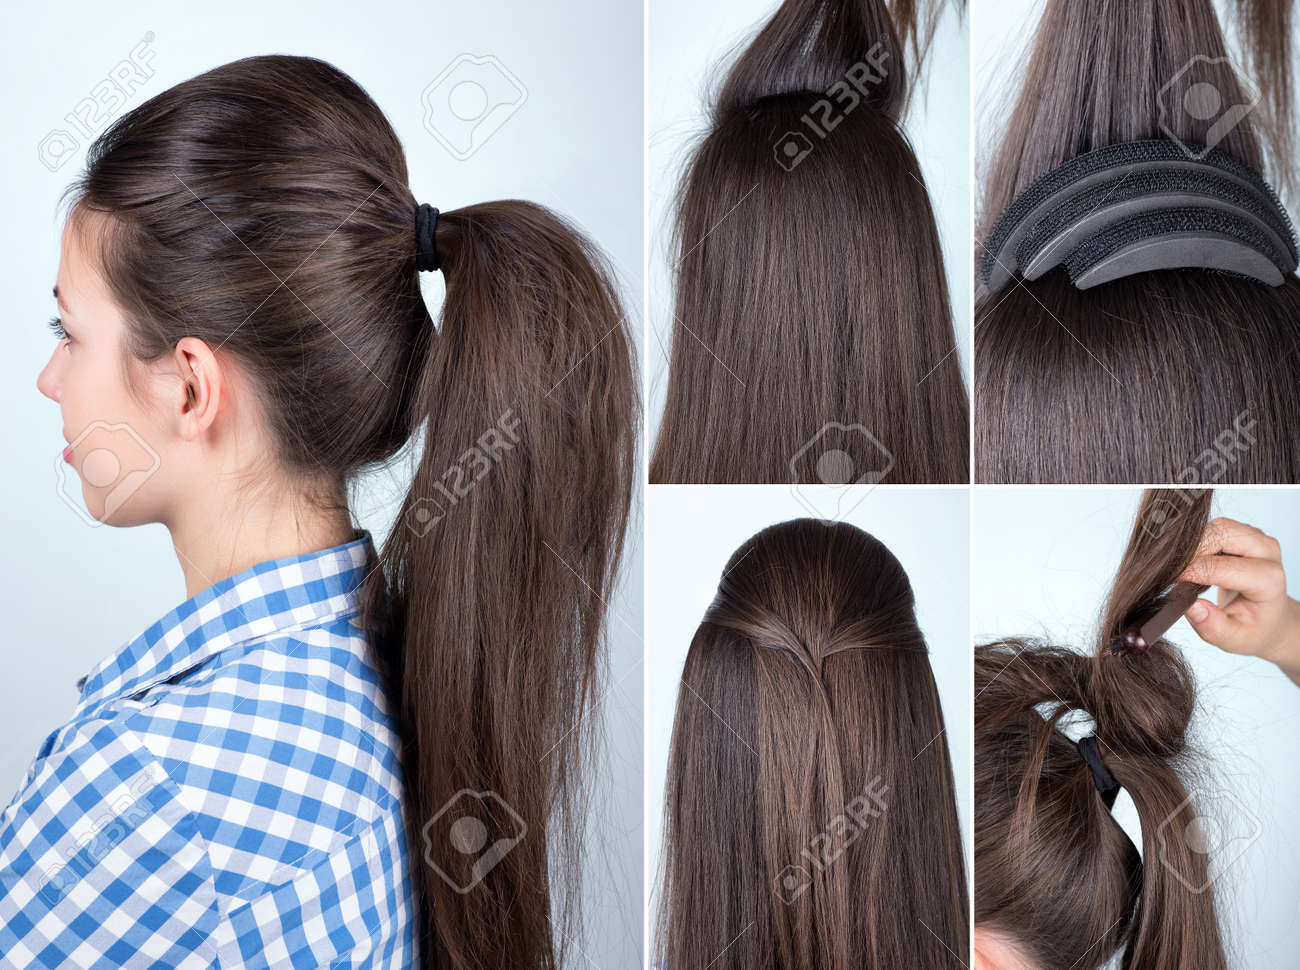 Hairstyle Volume Ponytail Tutorial Stock Photo Picture And Royalty